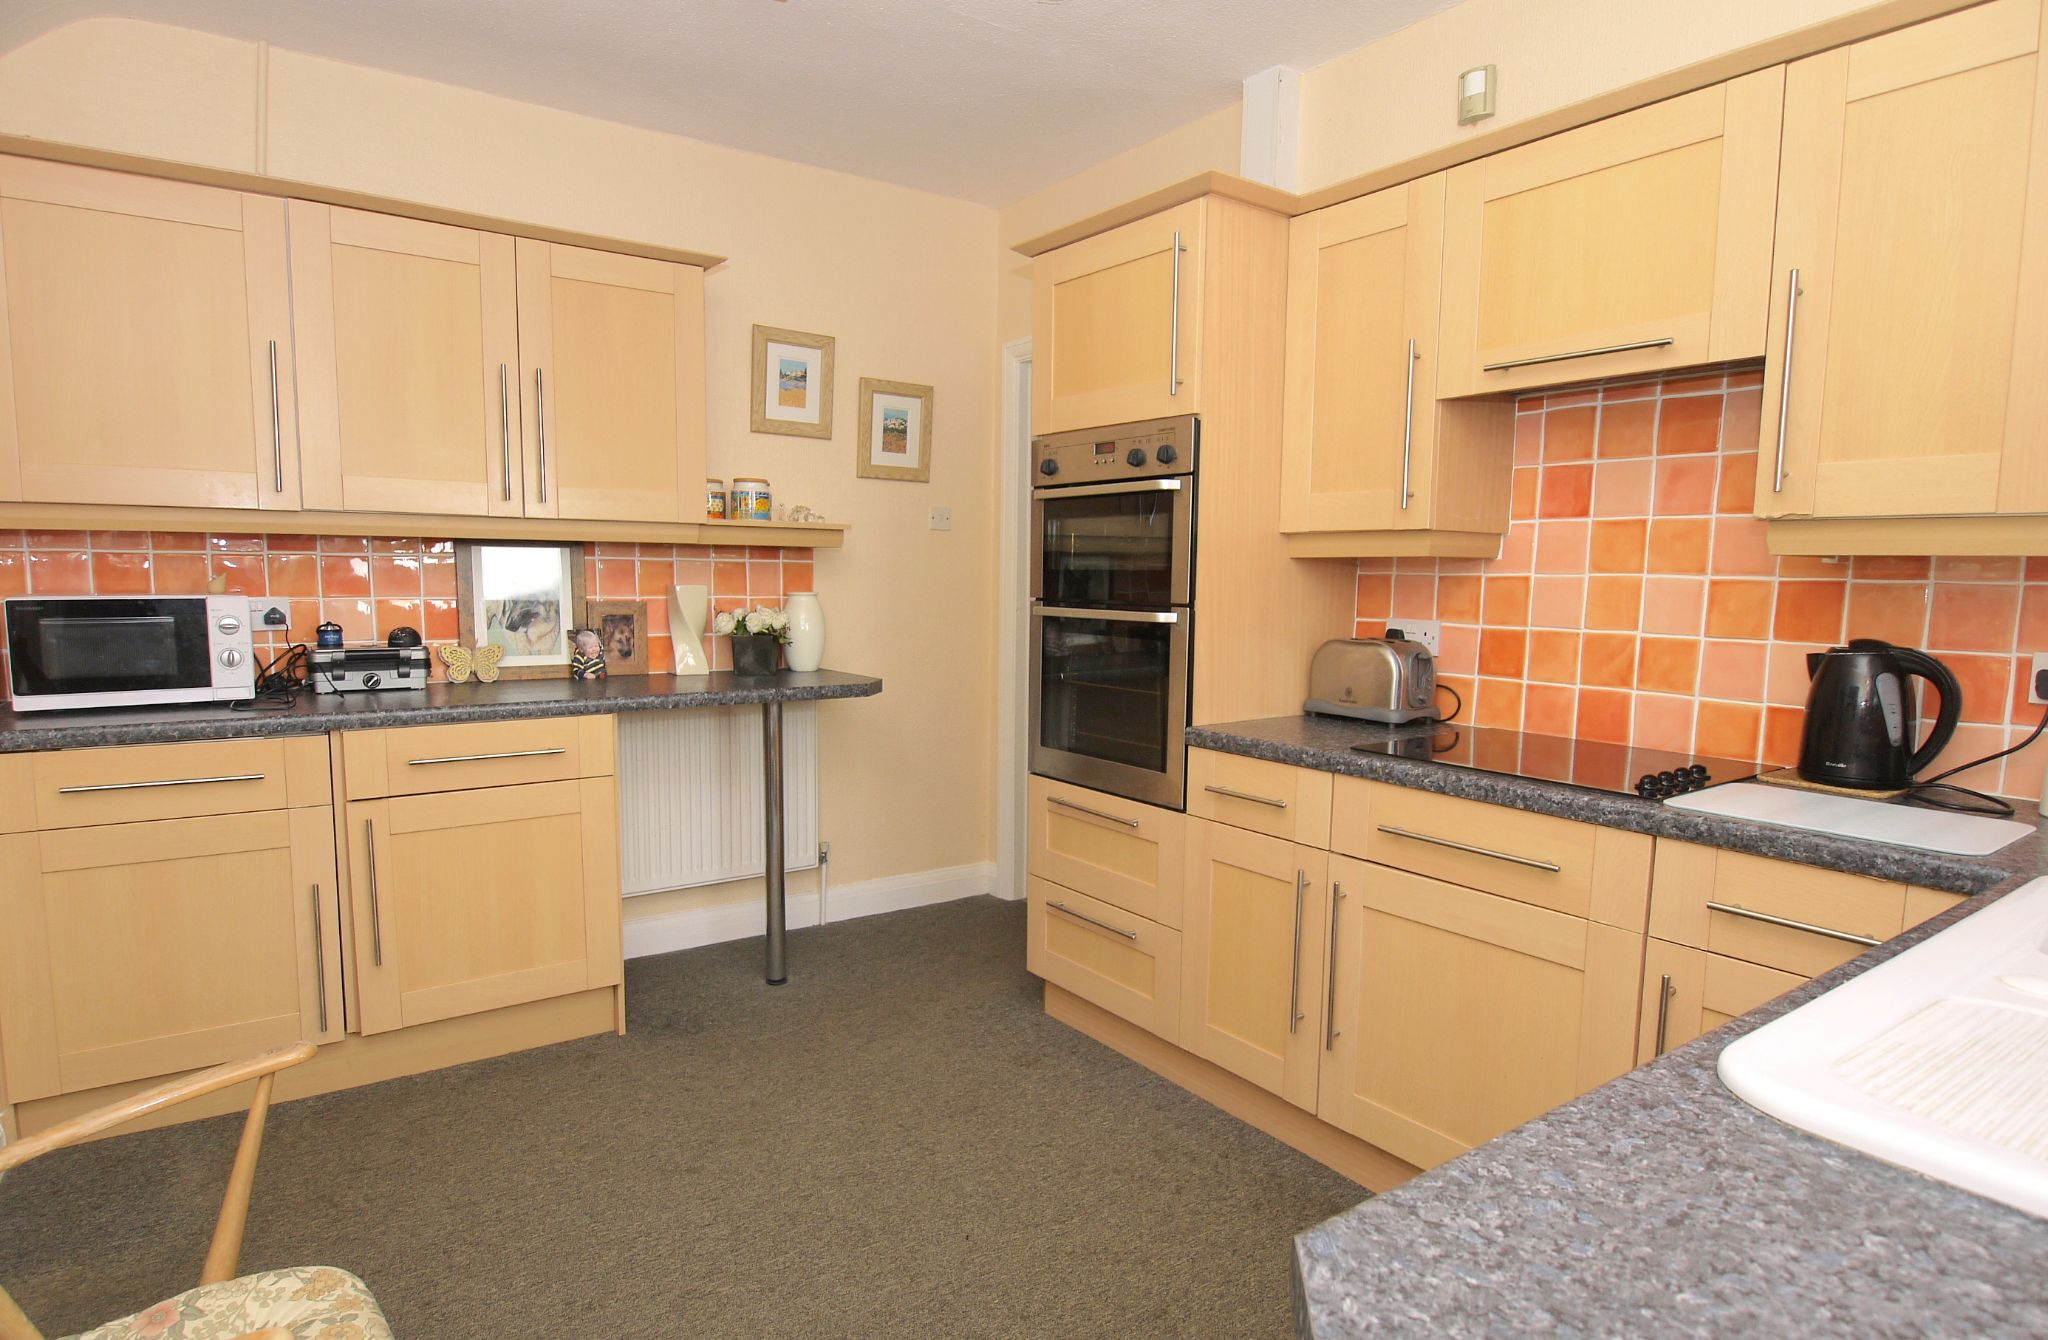 3 bedroom detached bungalow Sale Agreed in Sevenoaks - Photograph 4